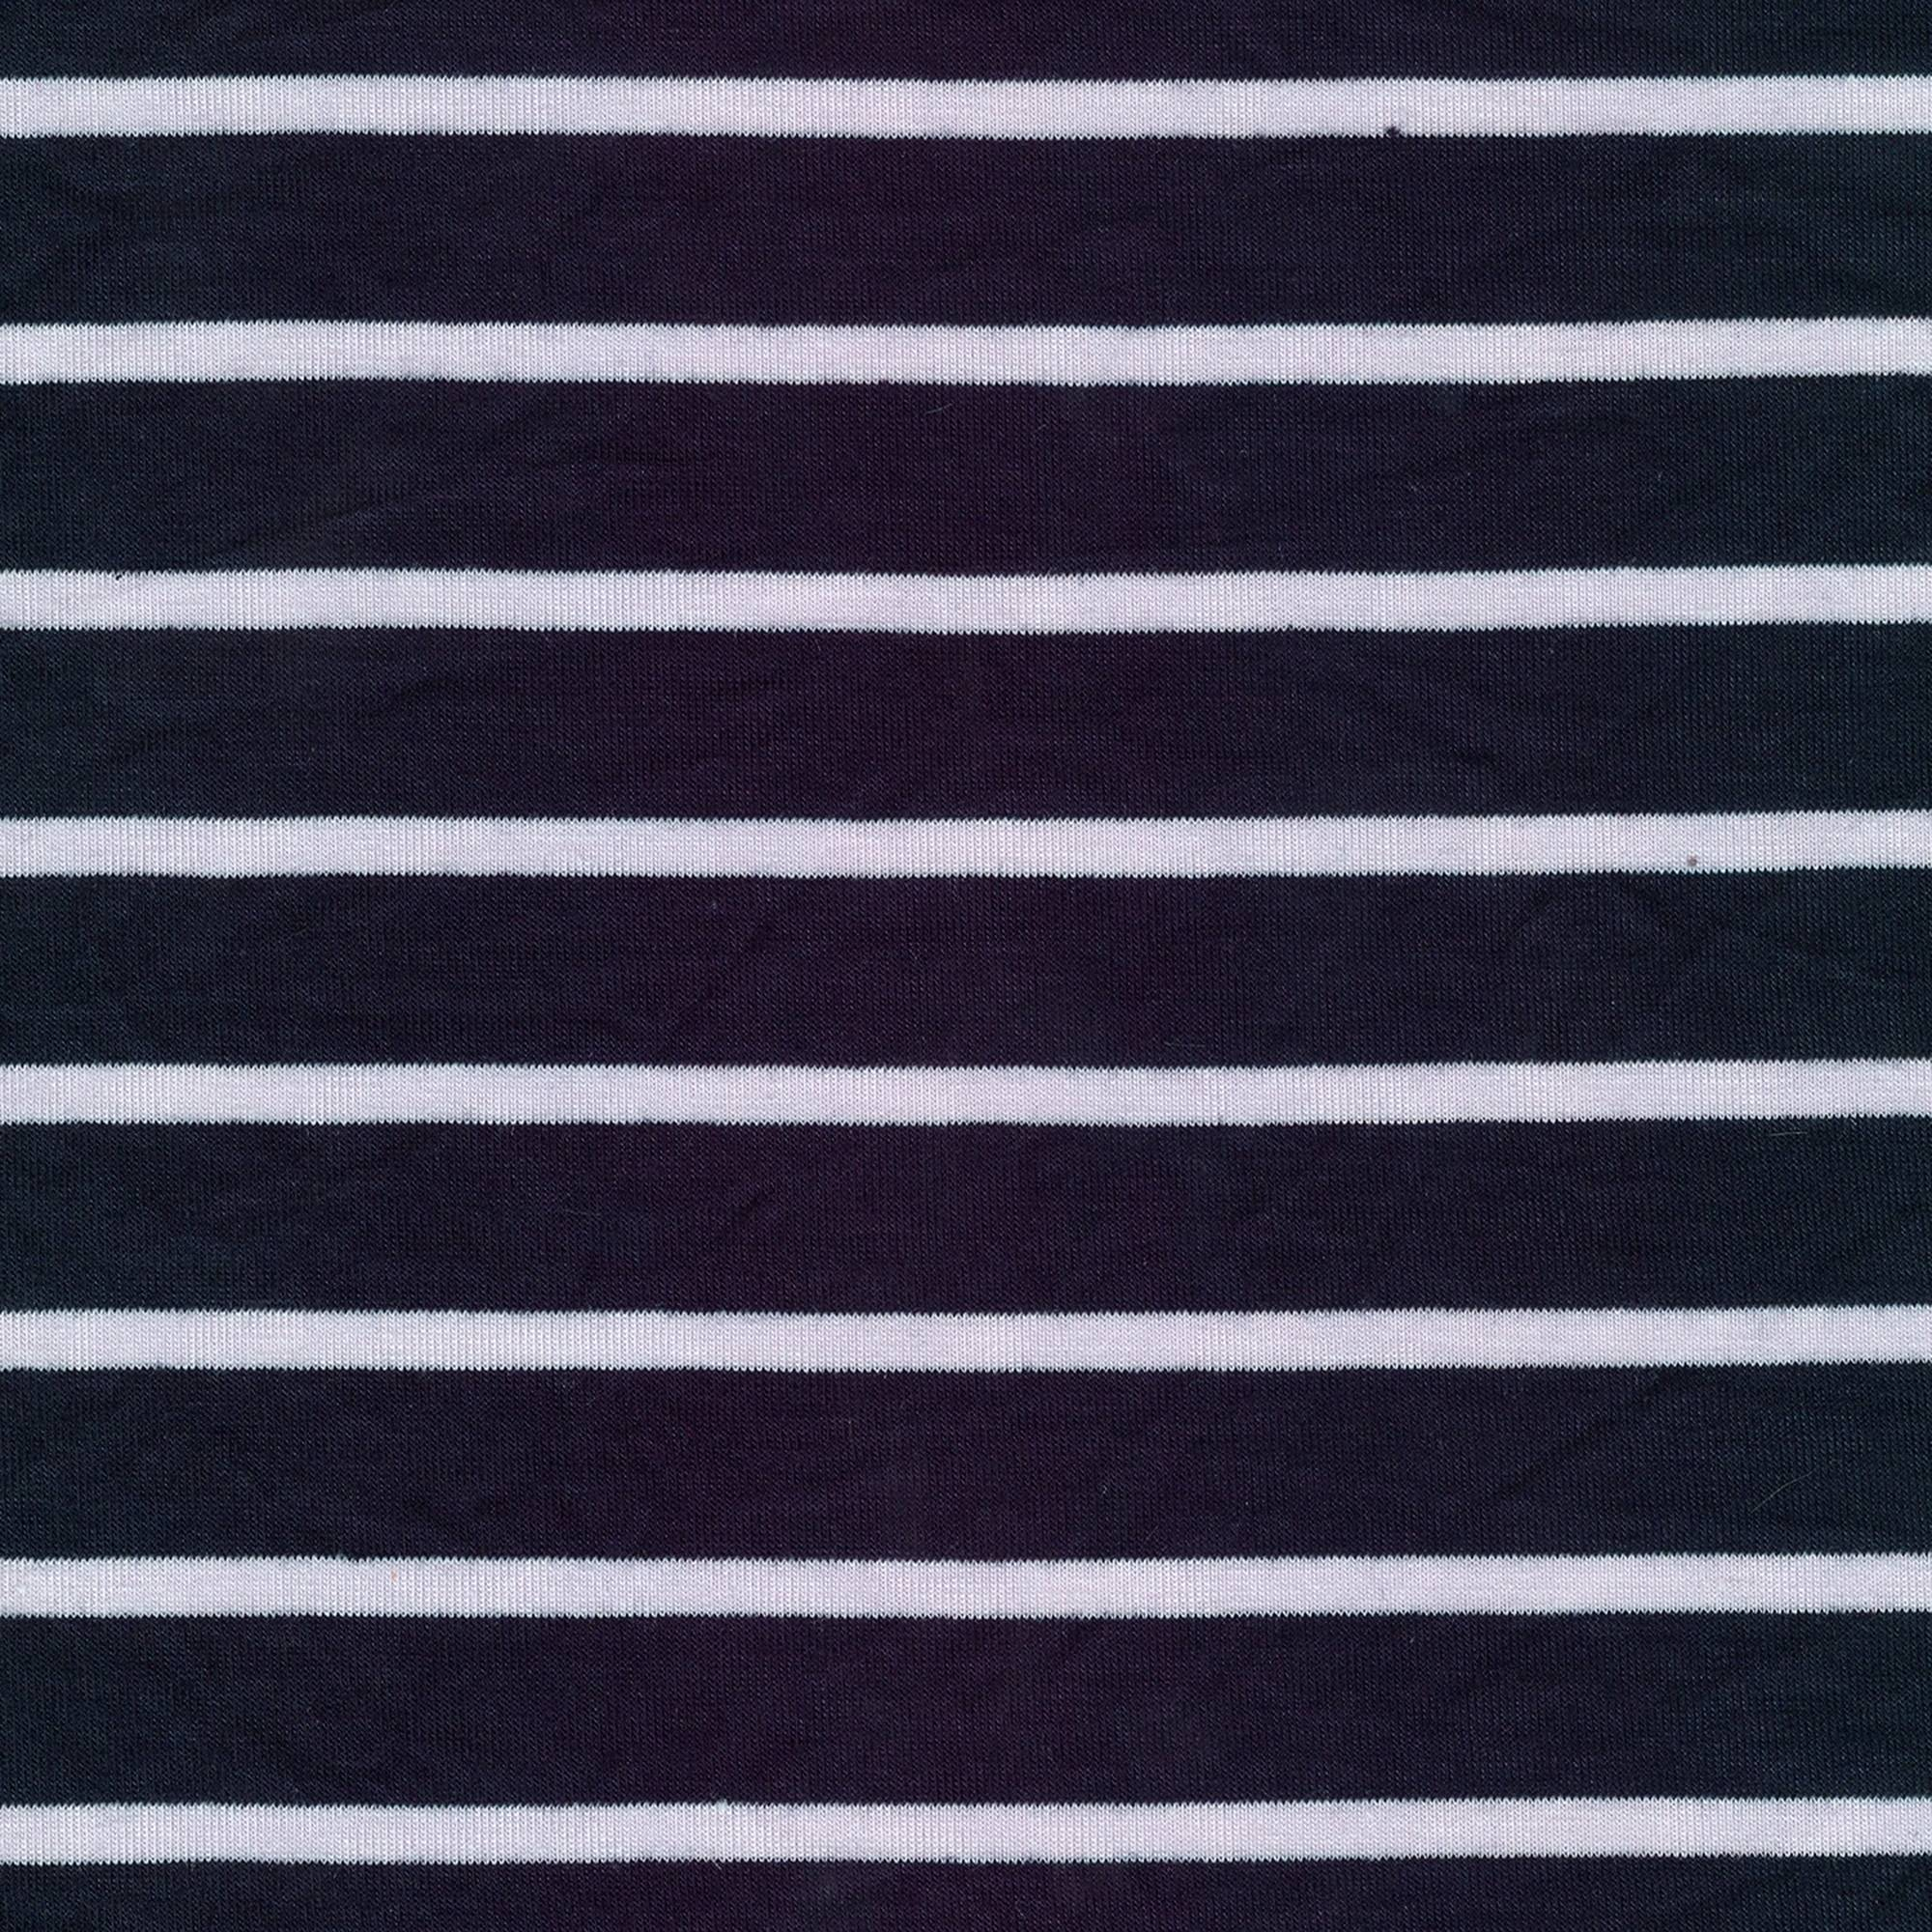 SHASON TEXTILE (3 Yards cut) CLASSIC SEW YARN DYED STRIPE FABRIC, NAVY / WHITE